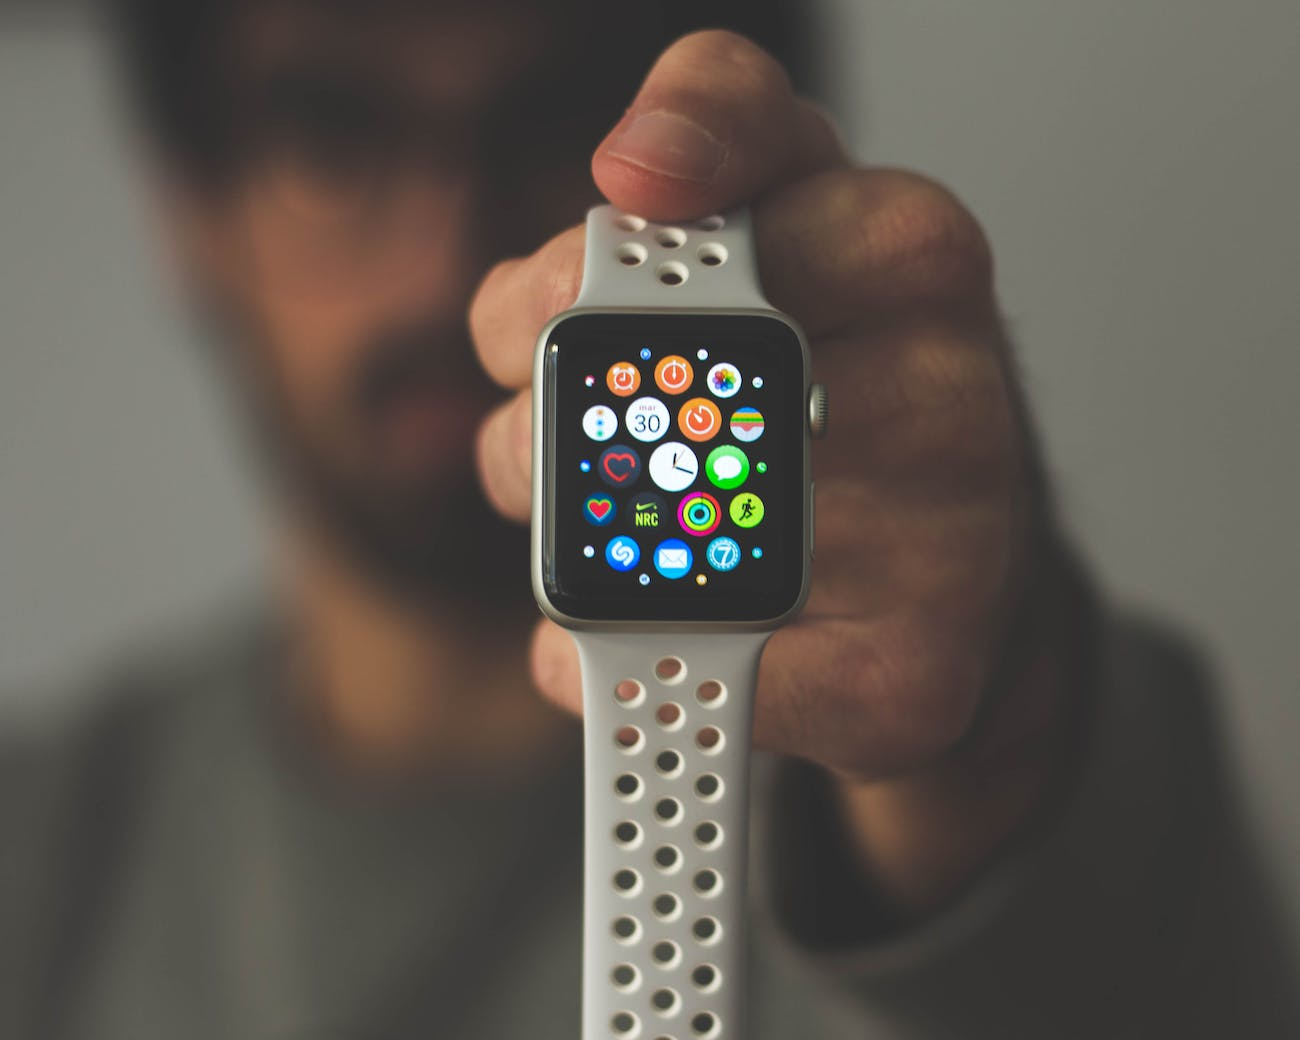 The Apple Watch home screen.